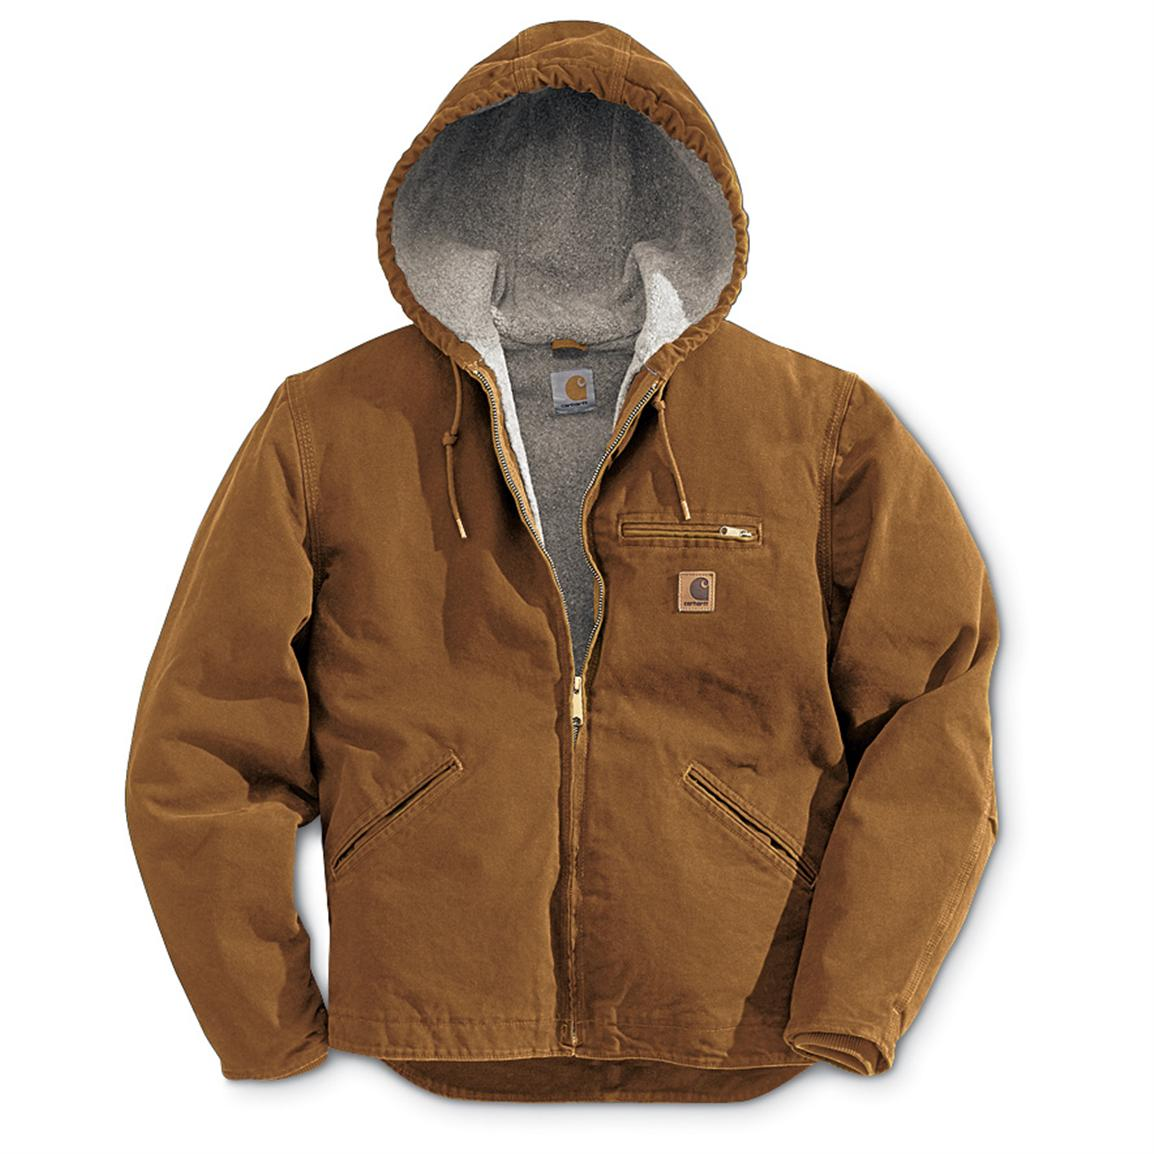 Hooded Jackets carhartt sandstone sierrra hooded workwear jacket, brown QEGUTAH